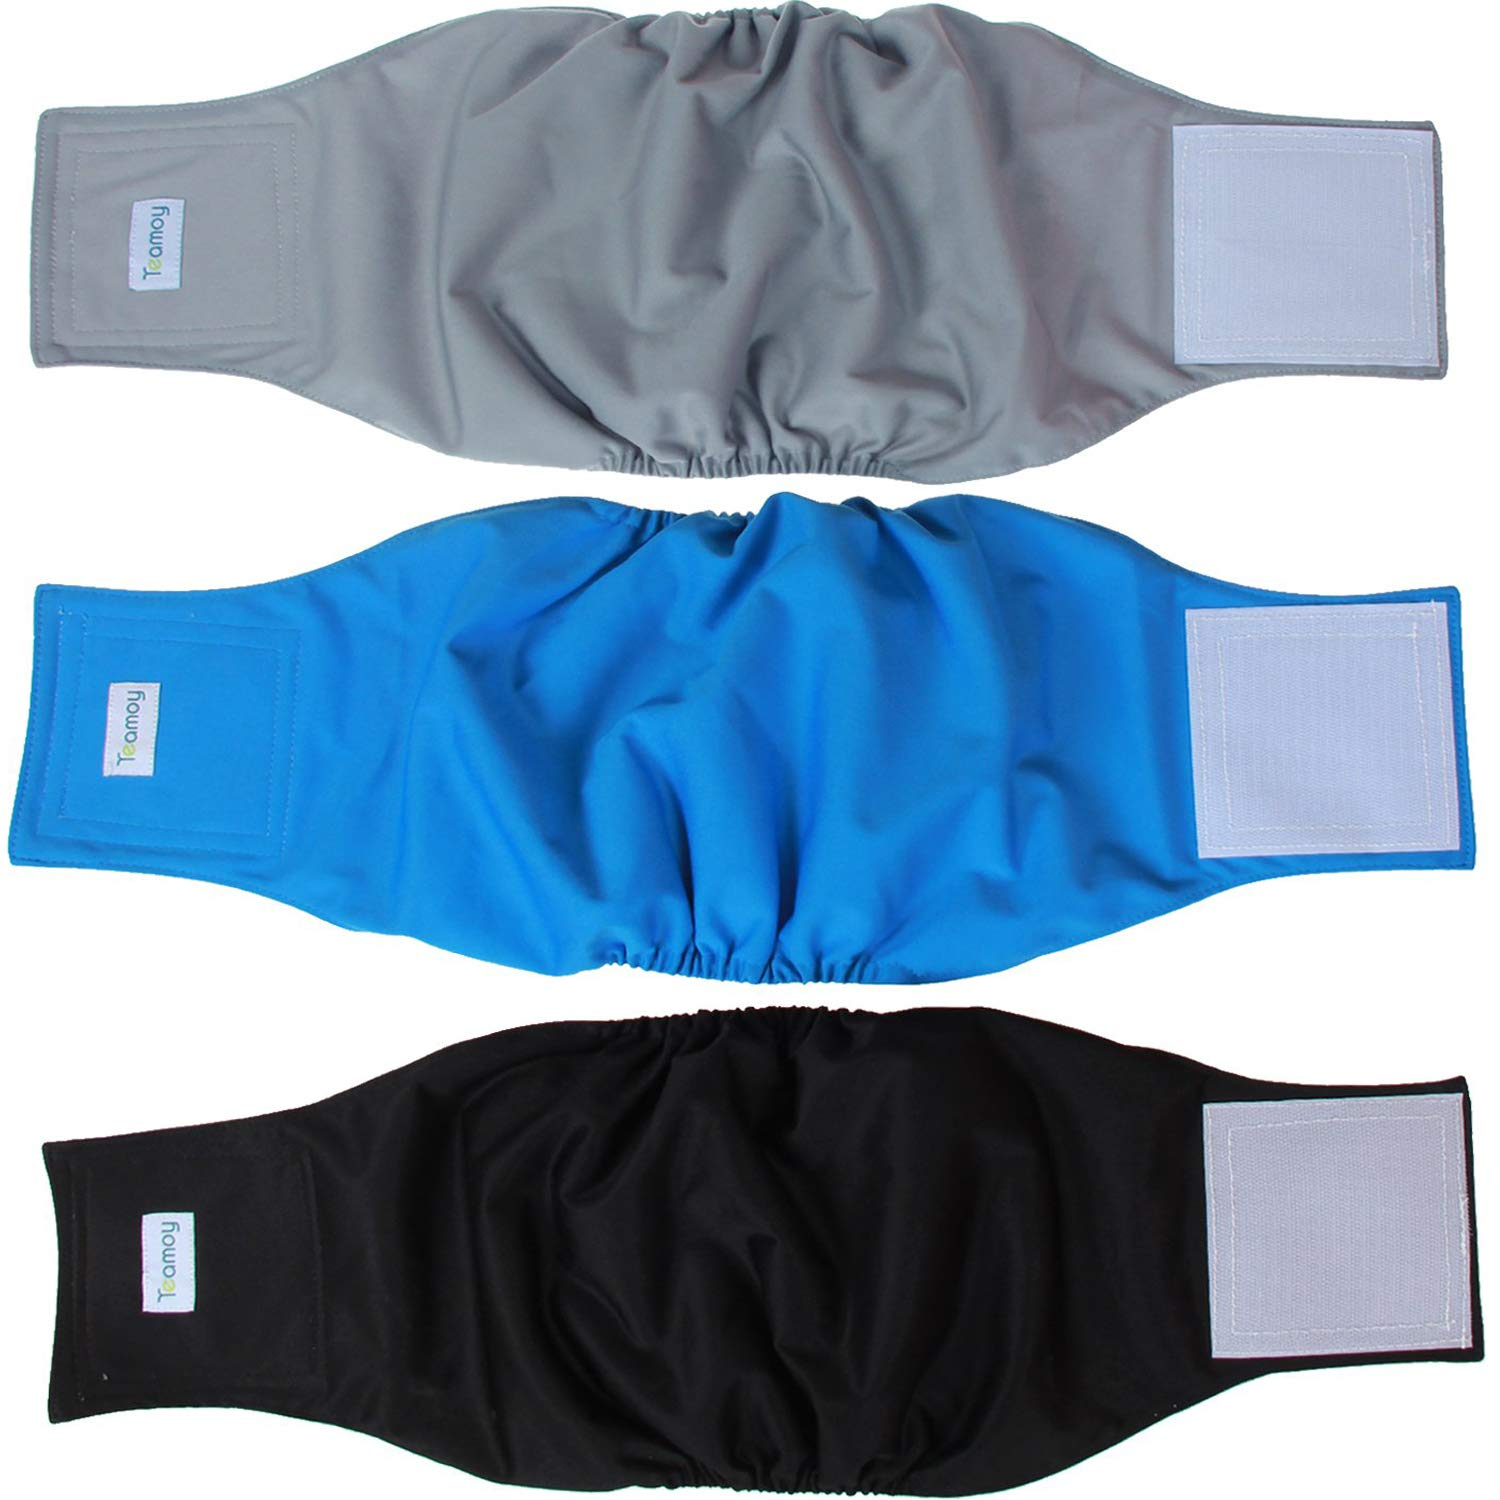 Teamoy Reusable Wrap Diapers for Male Dogs, Washable Puppy Belly Band Pack of 3 (XXL, Black+ Gray+ Lake Blue) by Teamoy